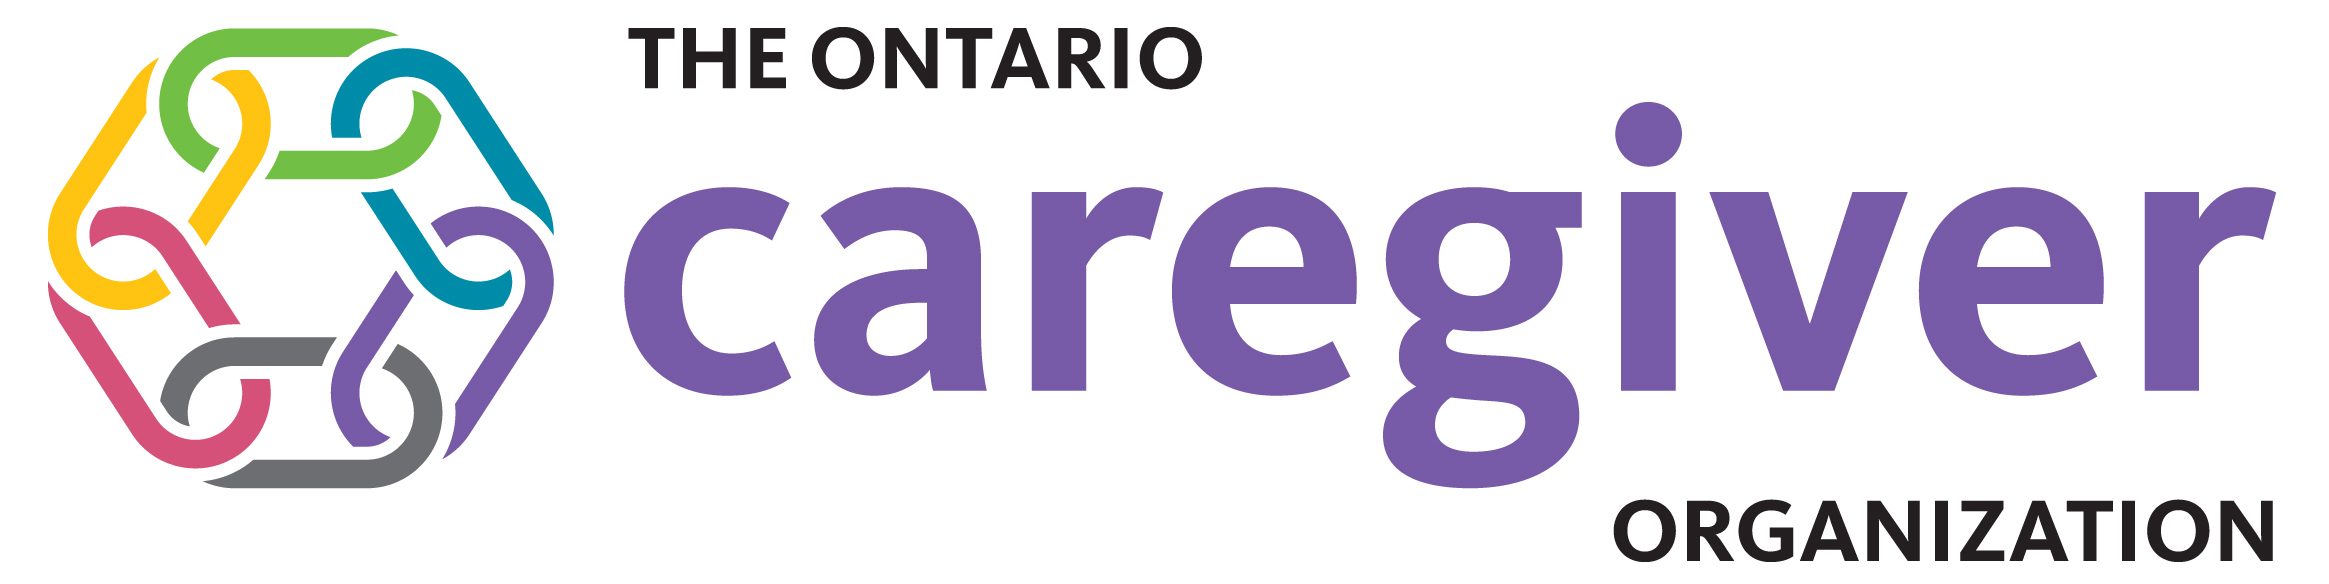 The Ontario Caregiver Organization